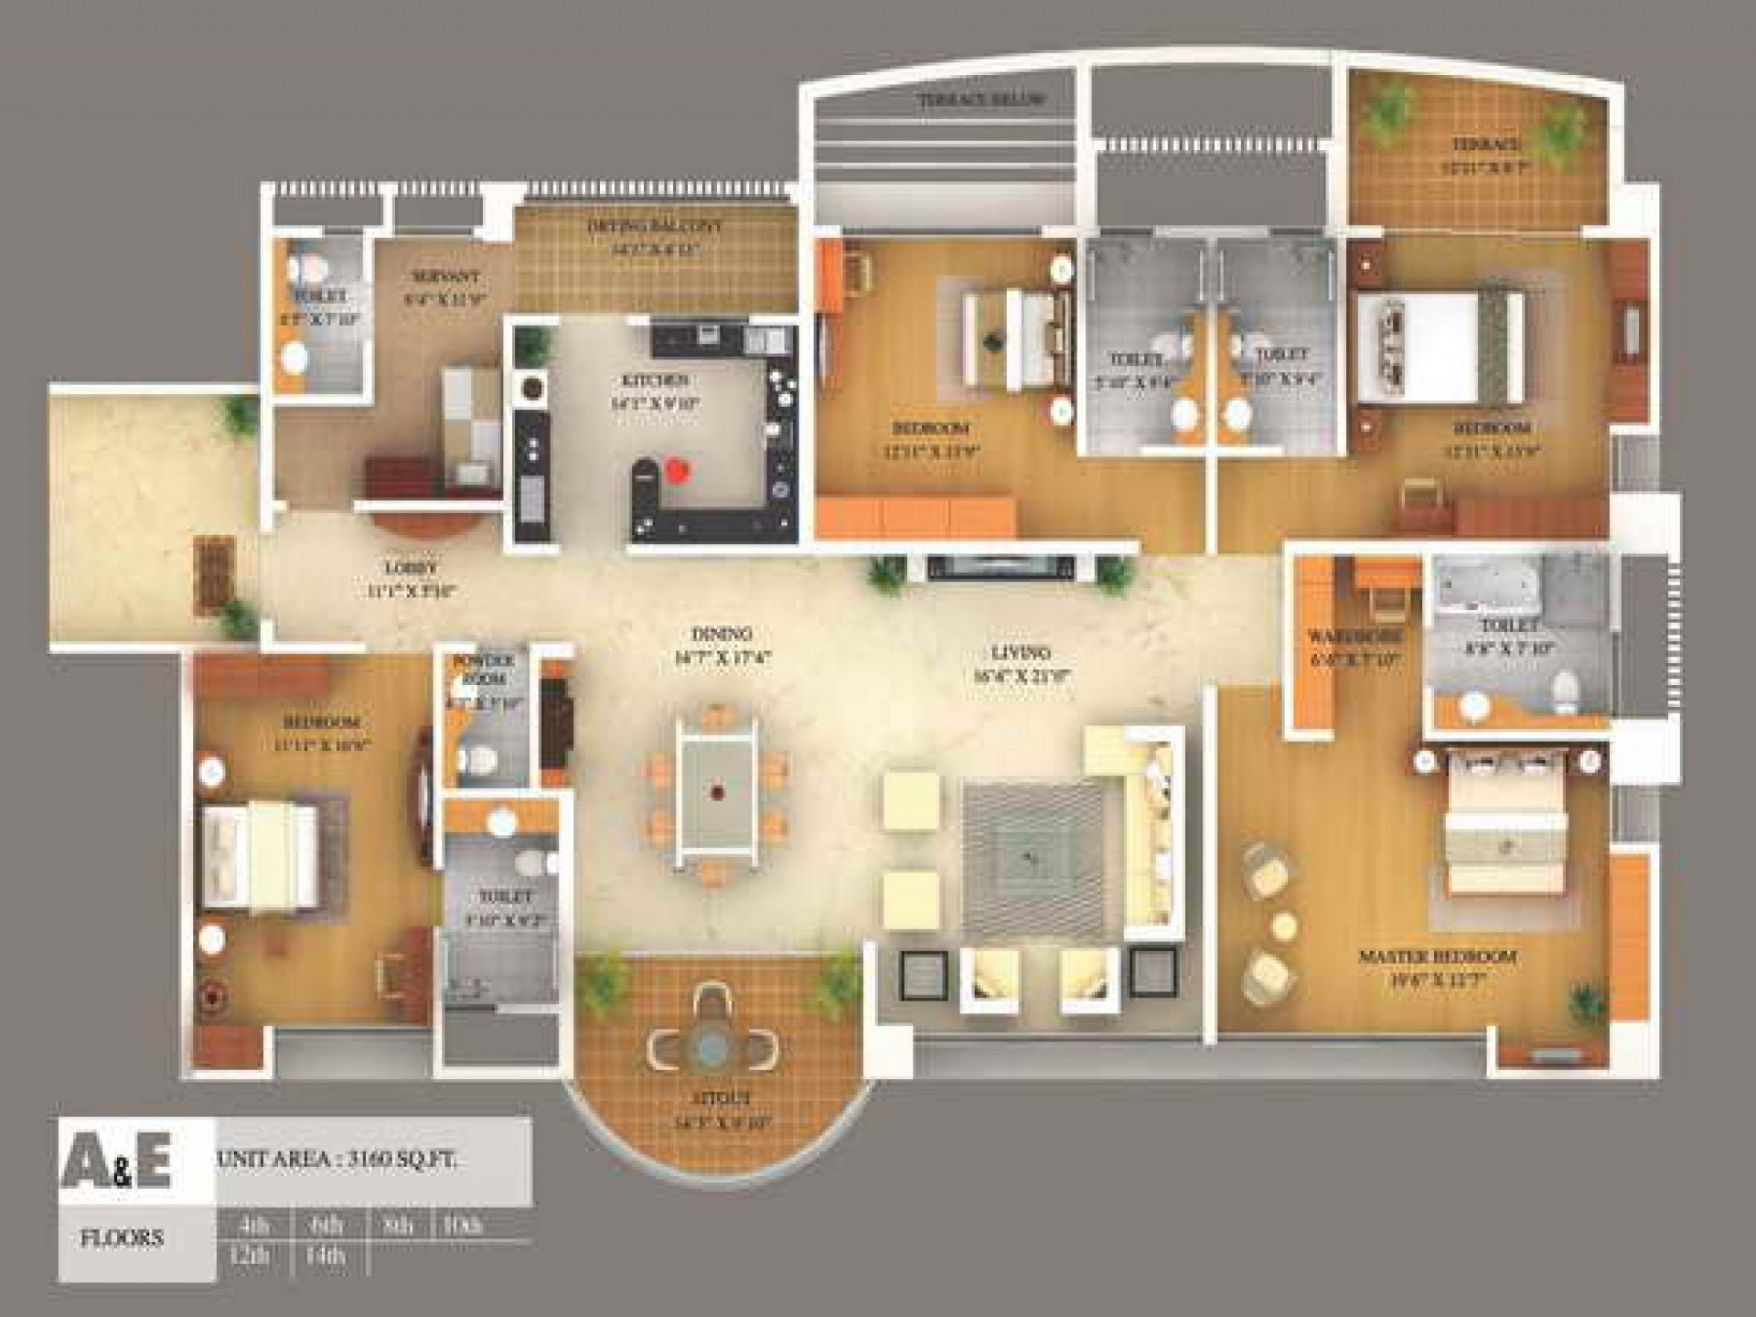 New House Extension Design Software Free Check More At Http Www Jnnsysy Com House Extension Desig Planos De Casas Grandes Casas De Dos Pisos Disenos De Casas